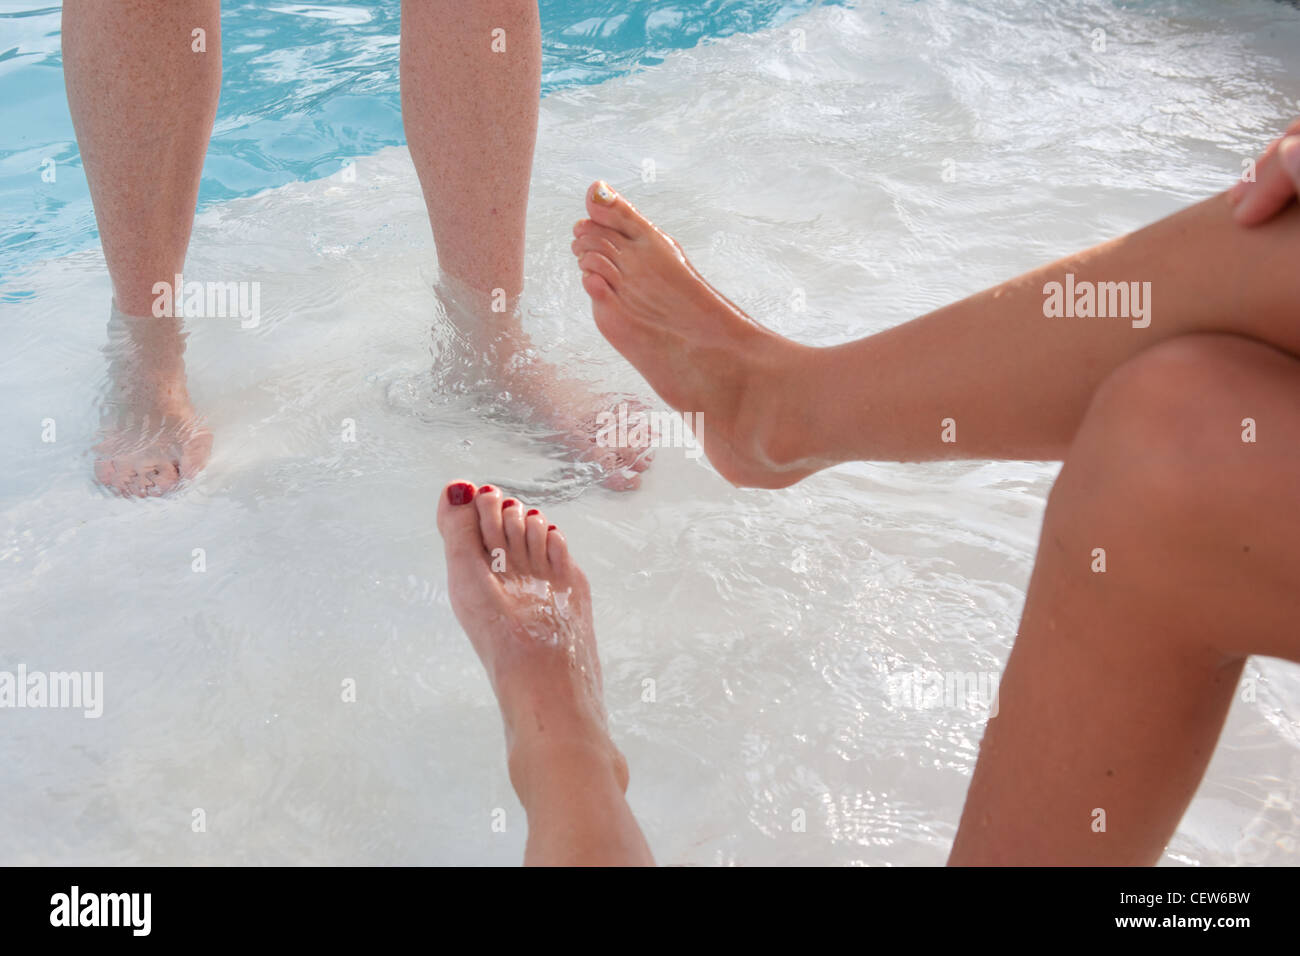 Legs And Feet In And Near Swimming Pool Water Three People Enjoying